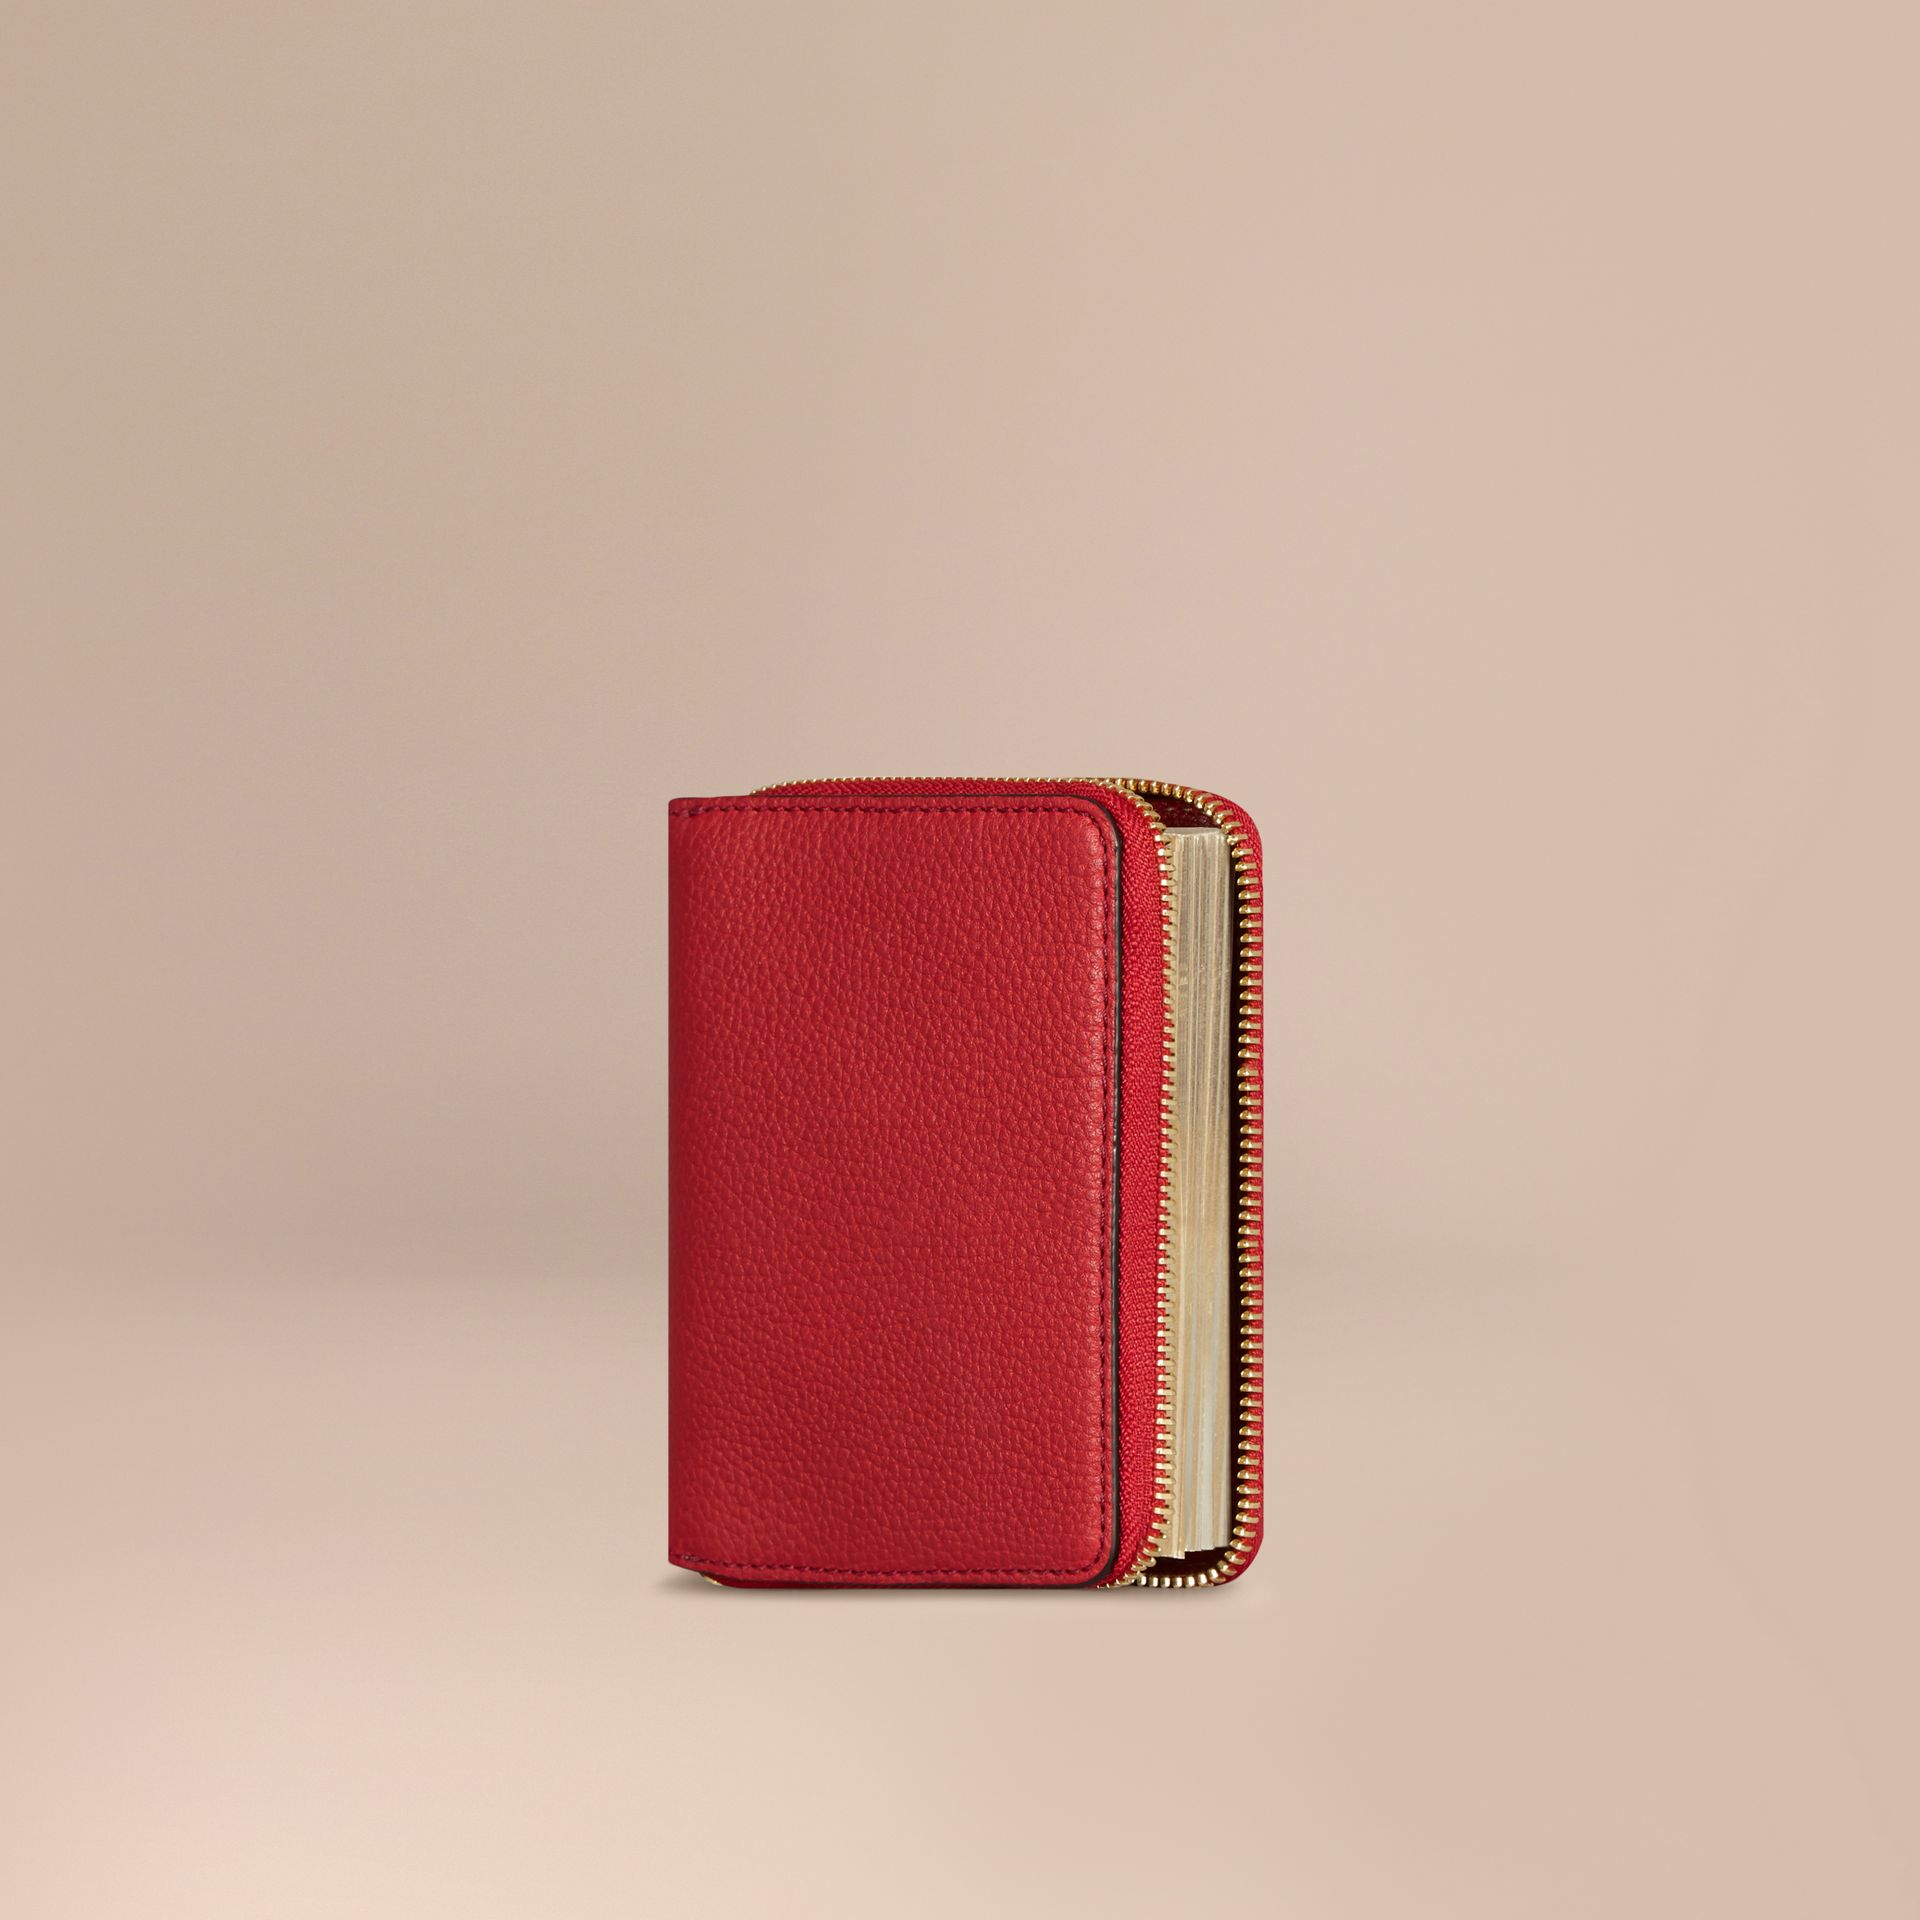 Ziparound Grainy Leather Mini Notebook in Parade Red | Burberry Australia - gallery image 1